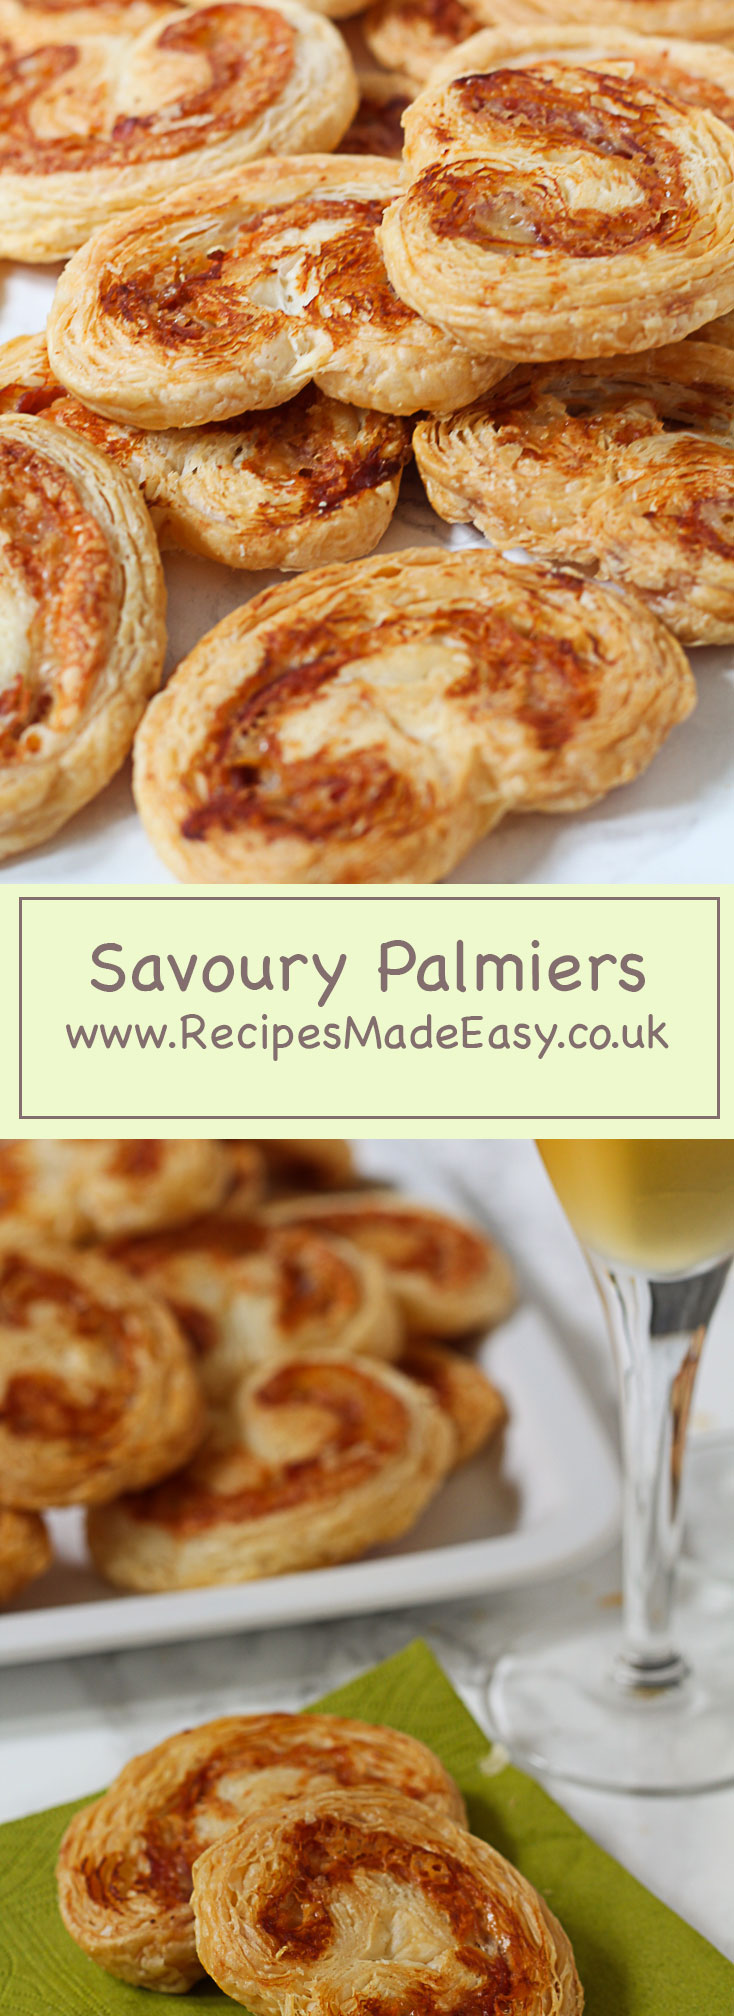 Savour Palmiers www.recipesmadeeasy.co.uk puff pastry filled with pancetta and gruyere cheese